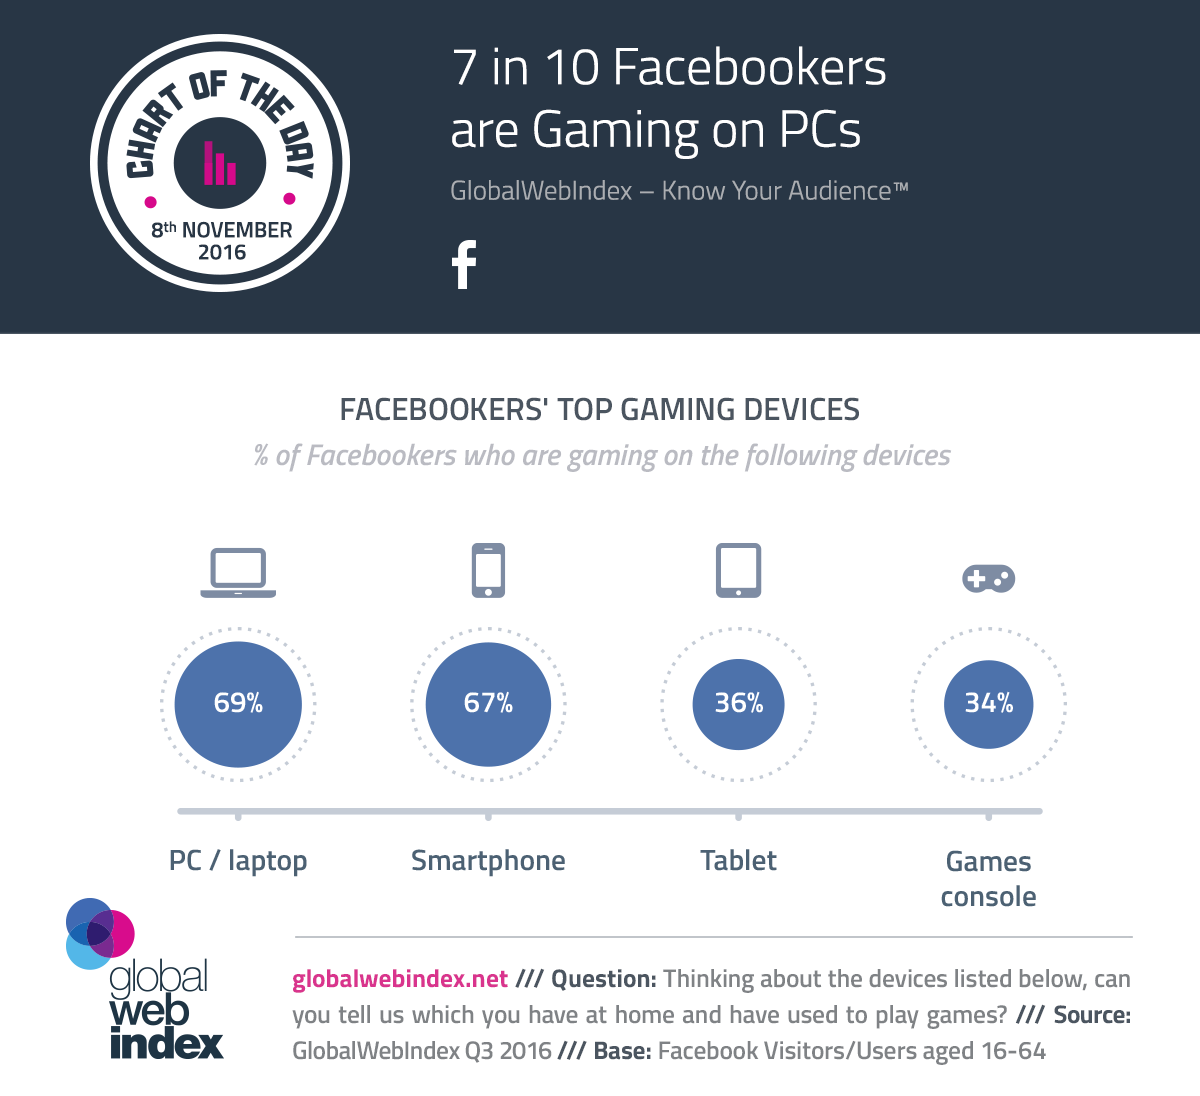 7 in 10 Facebookers are Gaming on PCs